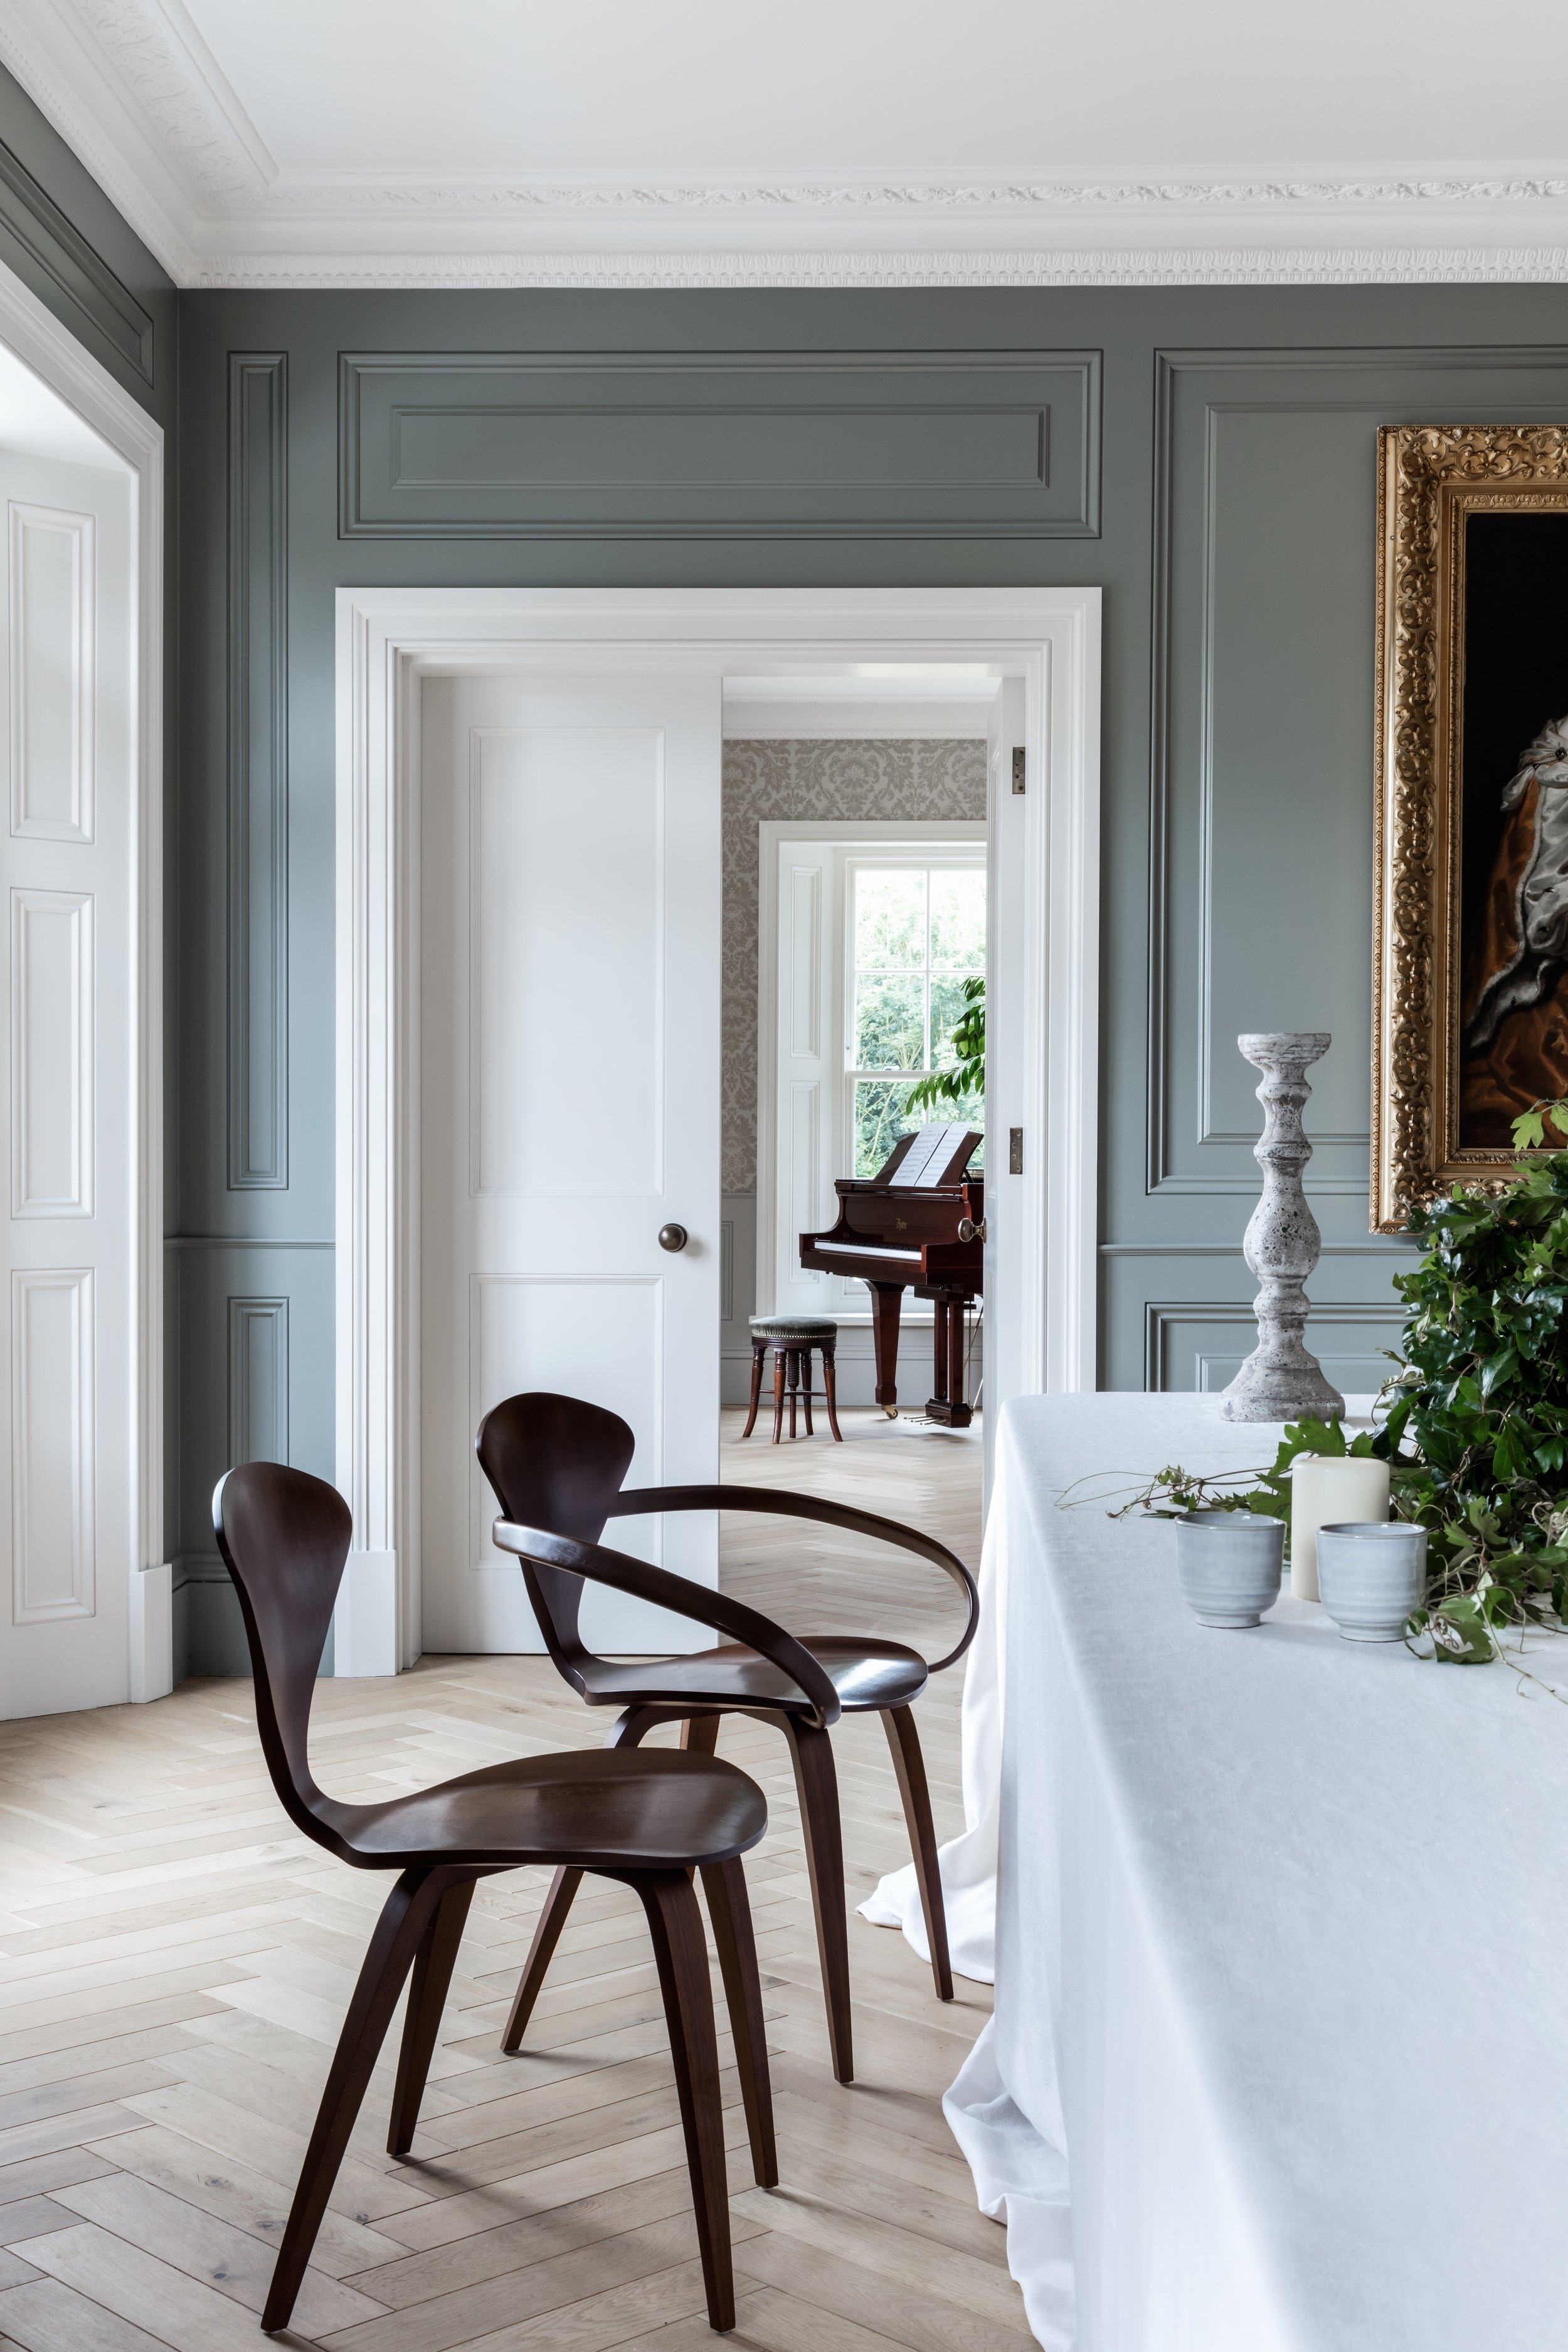 DINING ROOM VIEW TO DRAWING ROOM